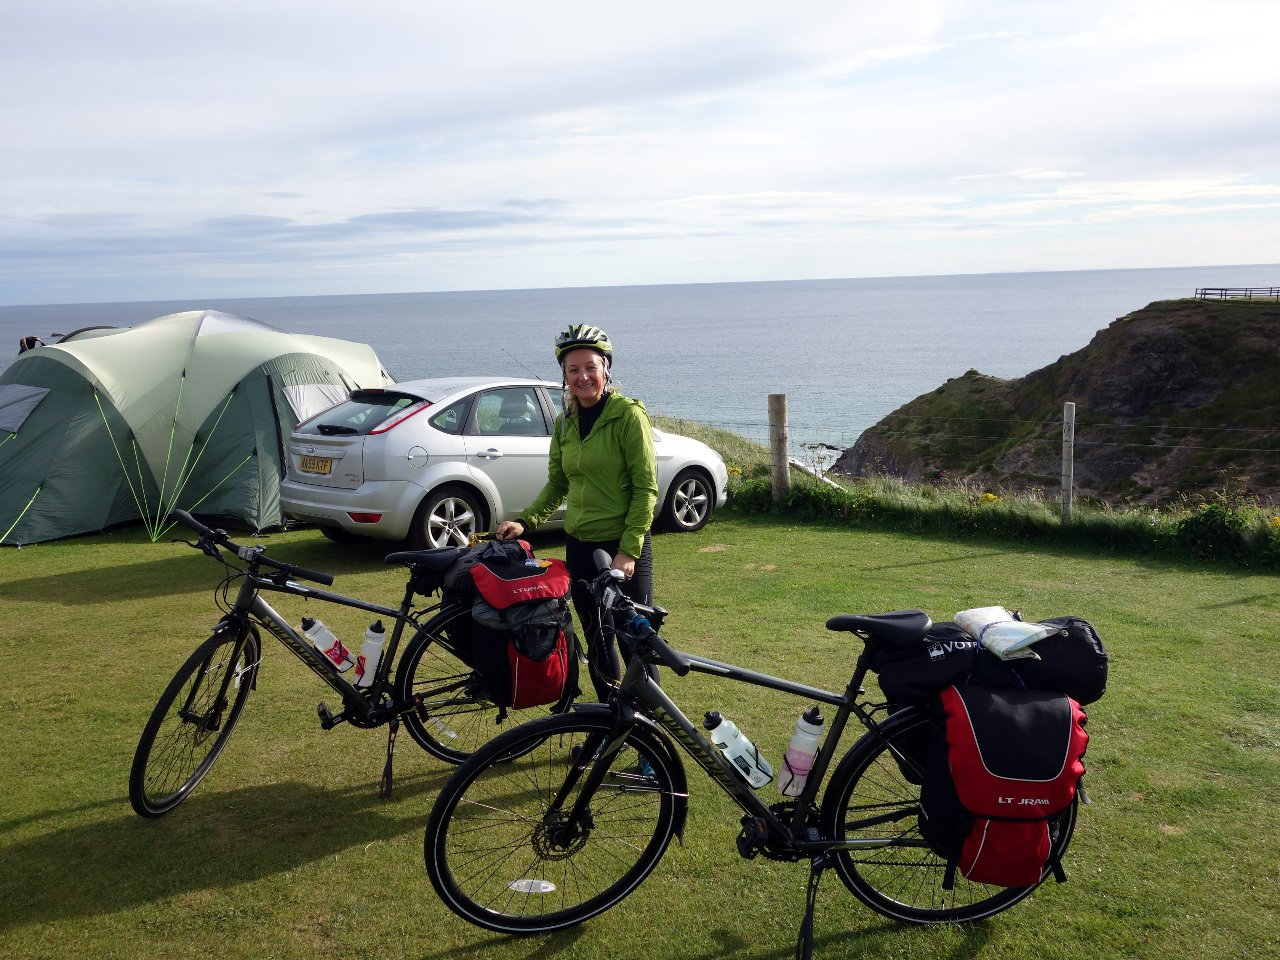 We decided to camp, as this would give us the flexibility to stop in the next campsite